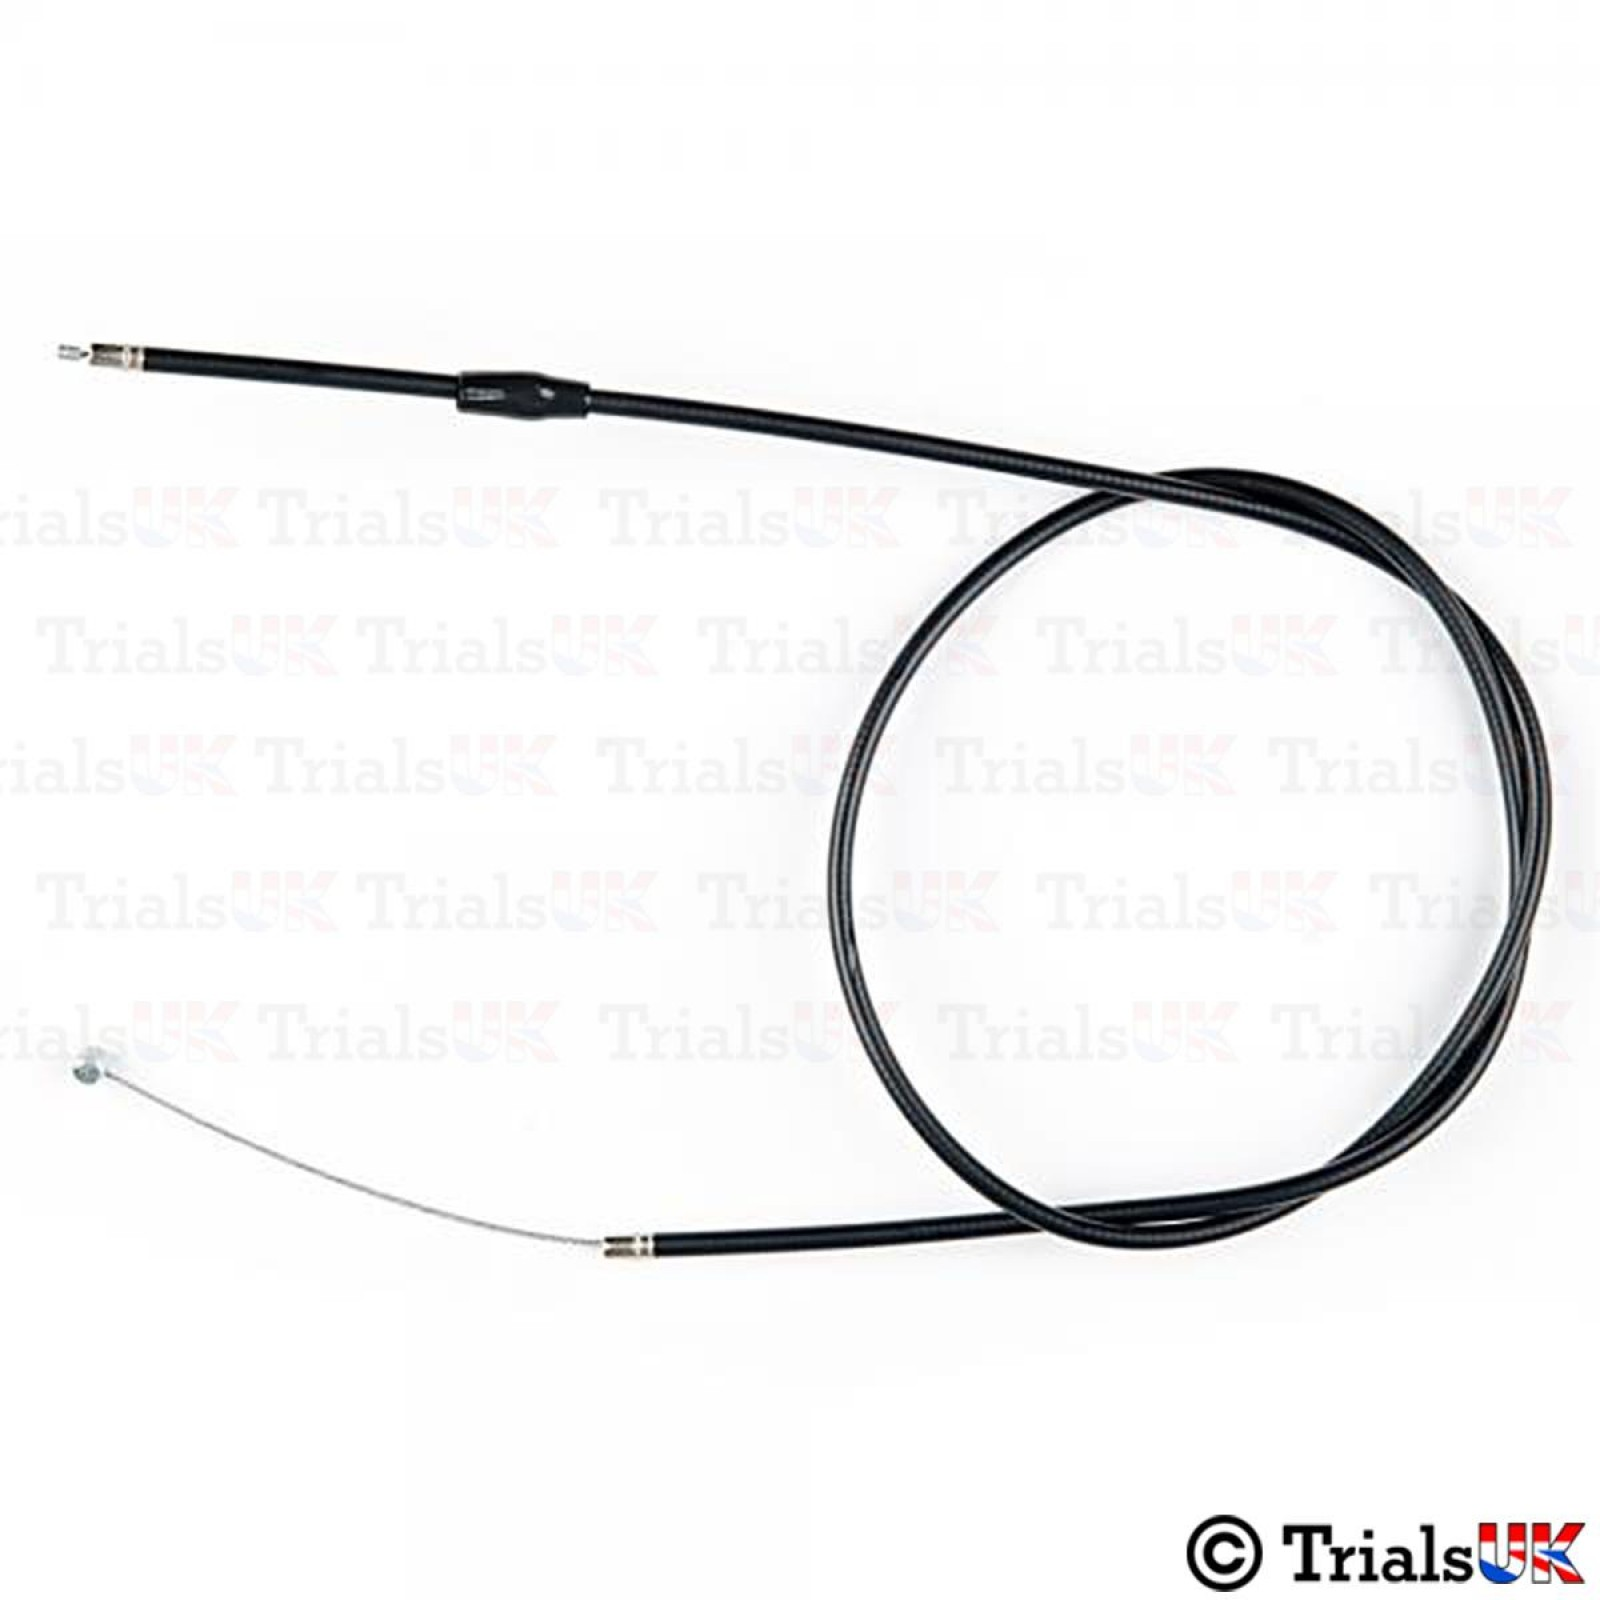 Jitsie Beta Rev-Evo 80 Throttle Cable 2003-2019